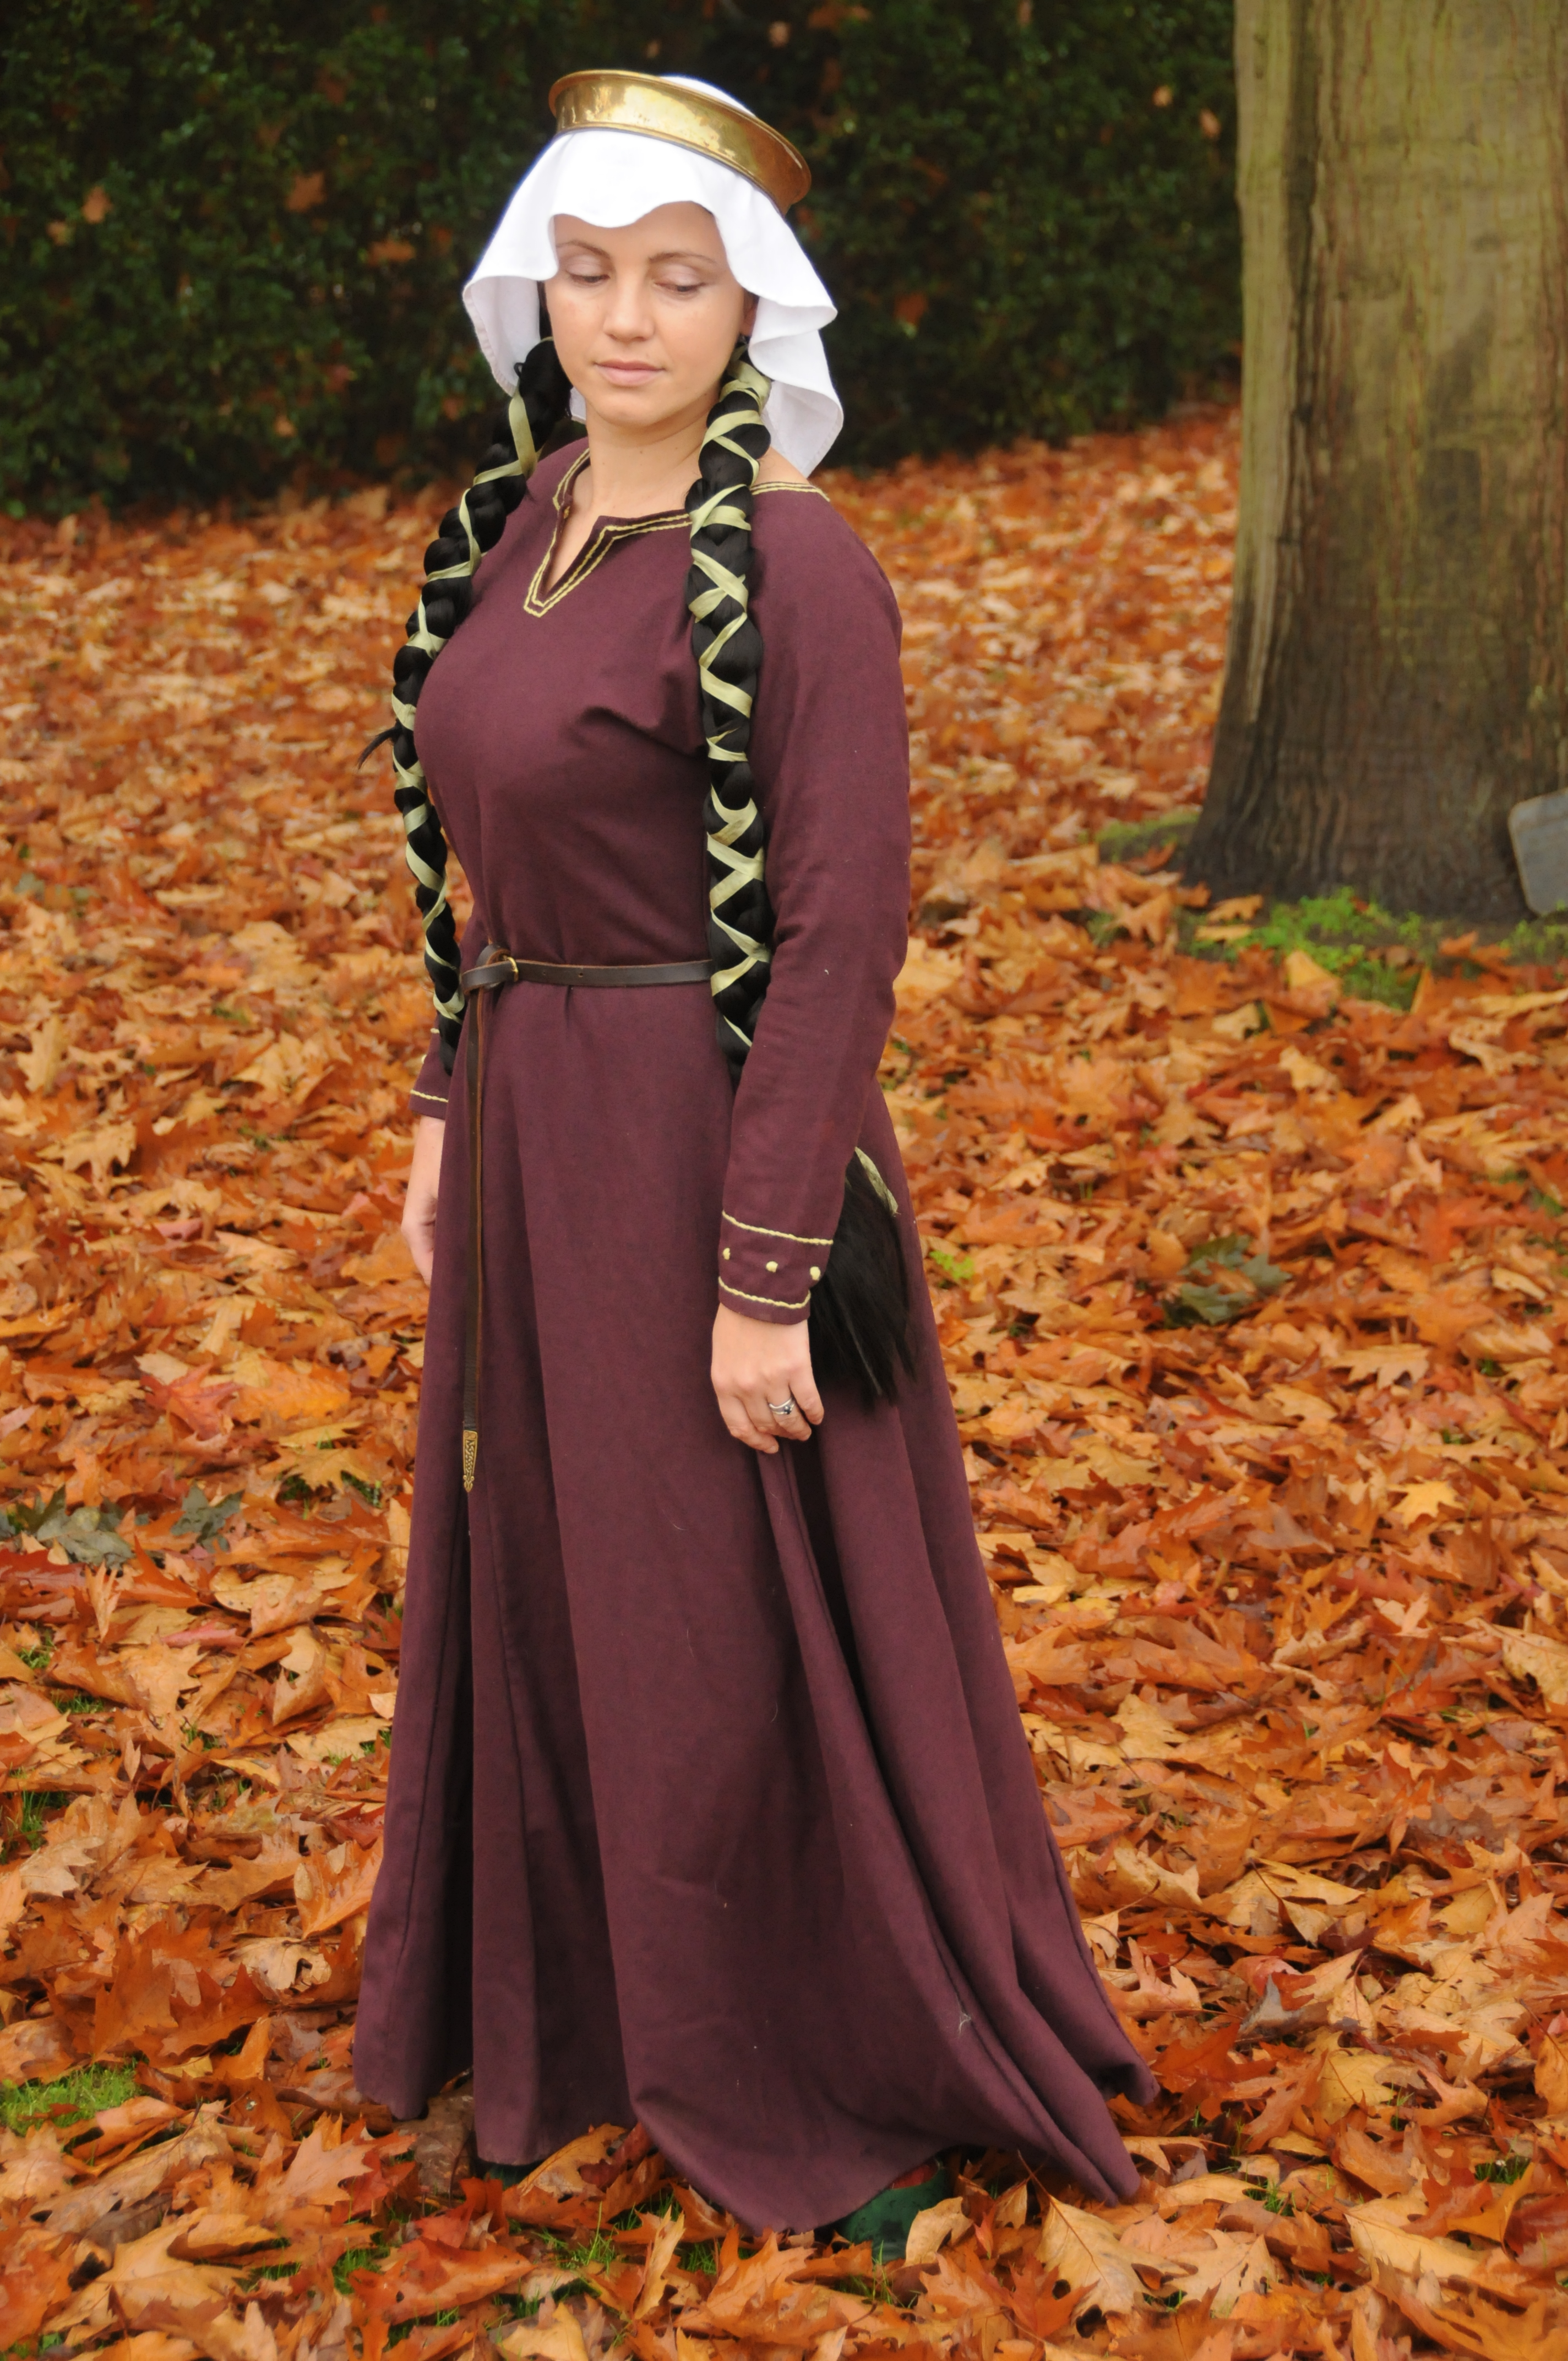 12th century dress � the bliaut a damsel in this dress